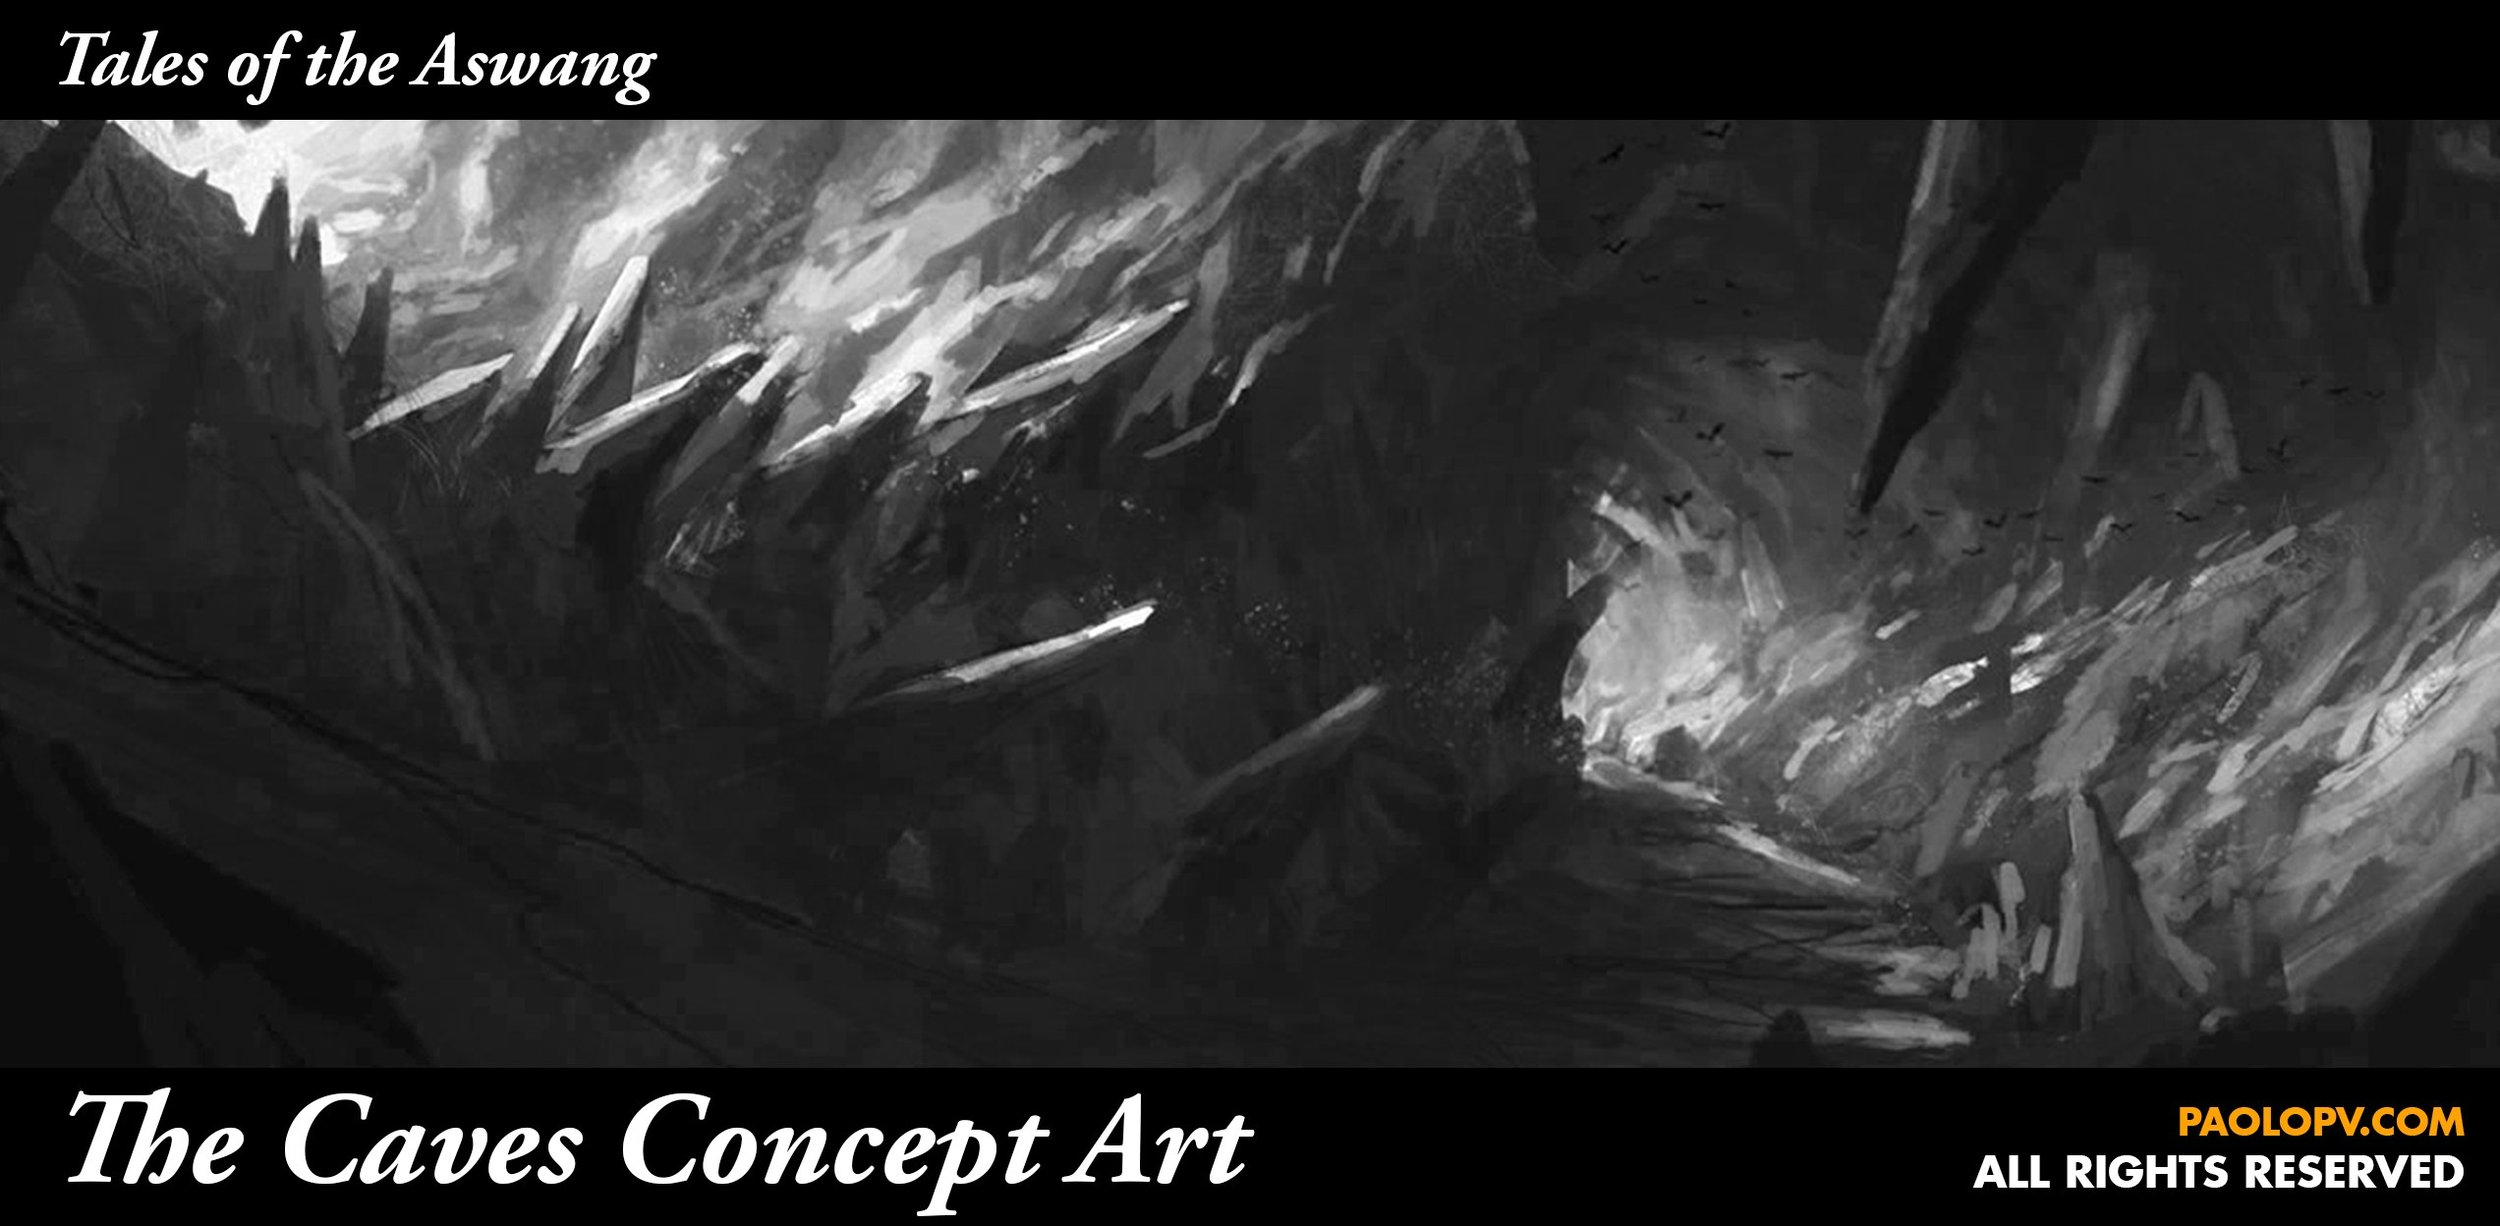 Tales-of-the-Aswang-Concept-Art-The-Caves.jpg